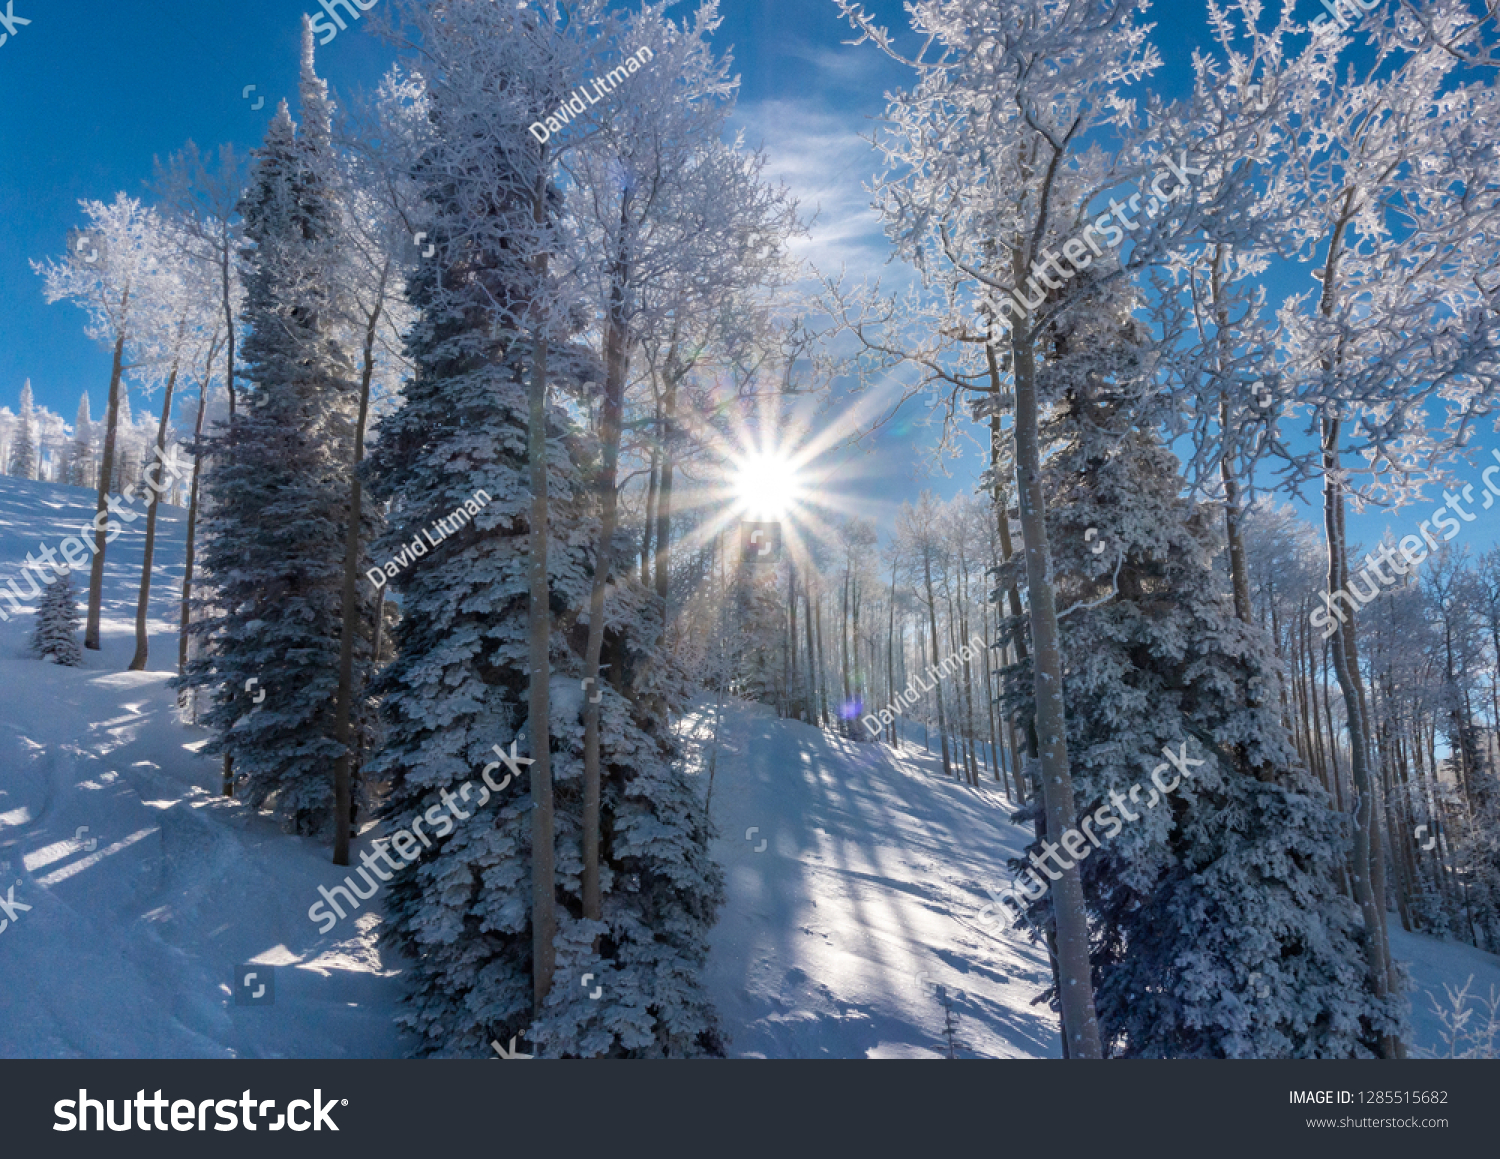 Sunrise in the Rocky Mountains of Colorado, as the sun rises and shines through snow covered pine trees and Aspen trees.